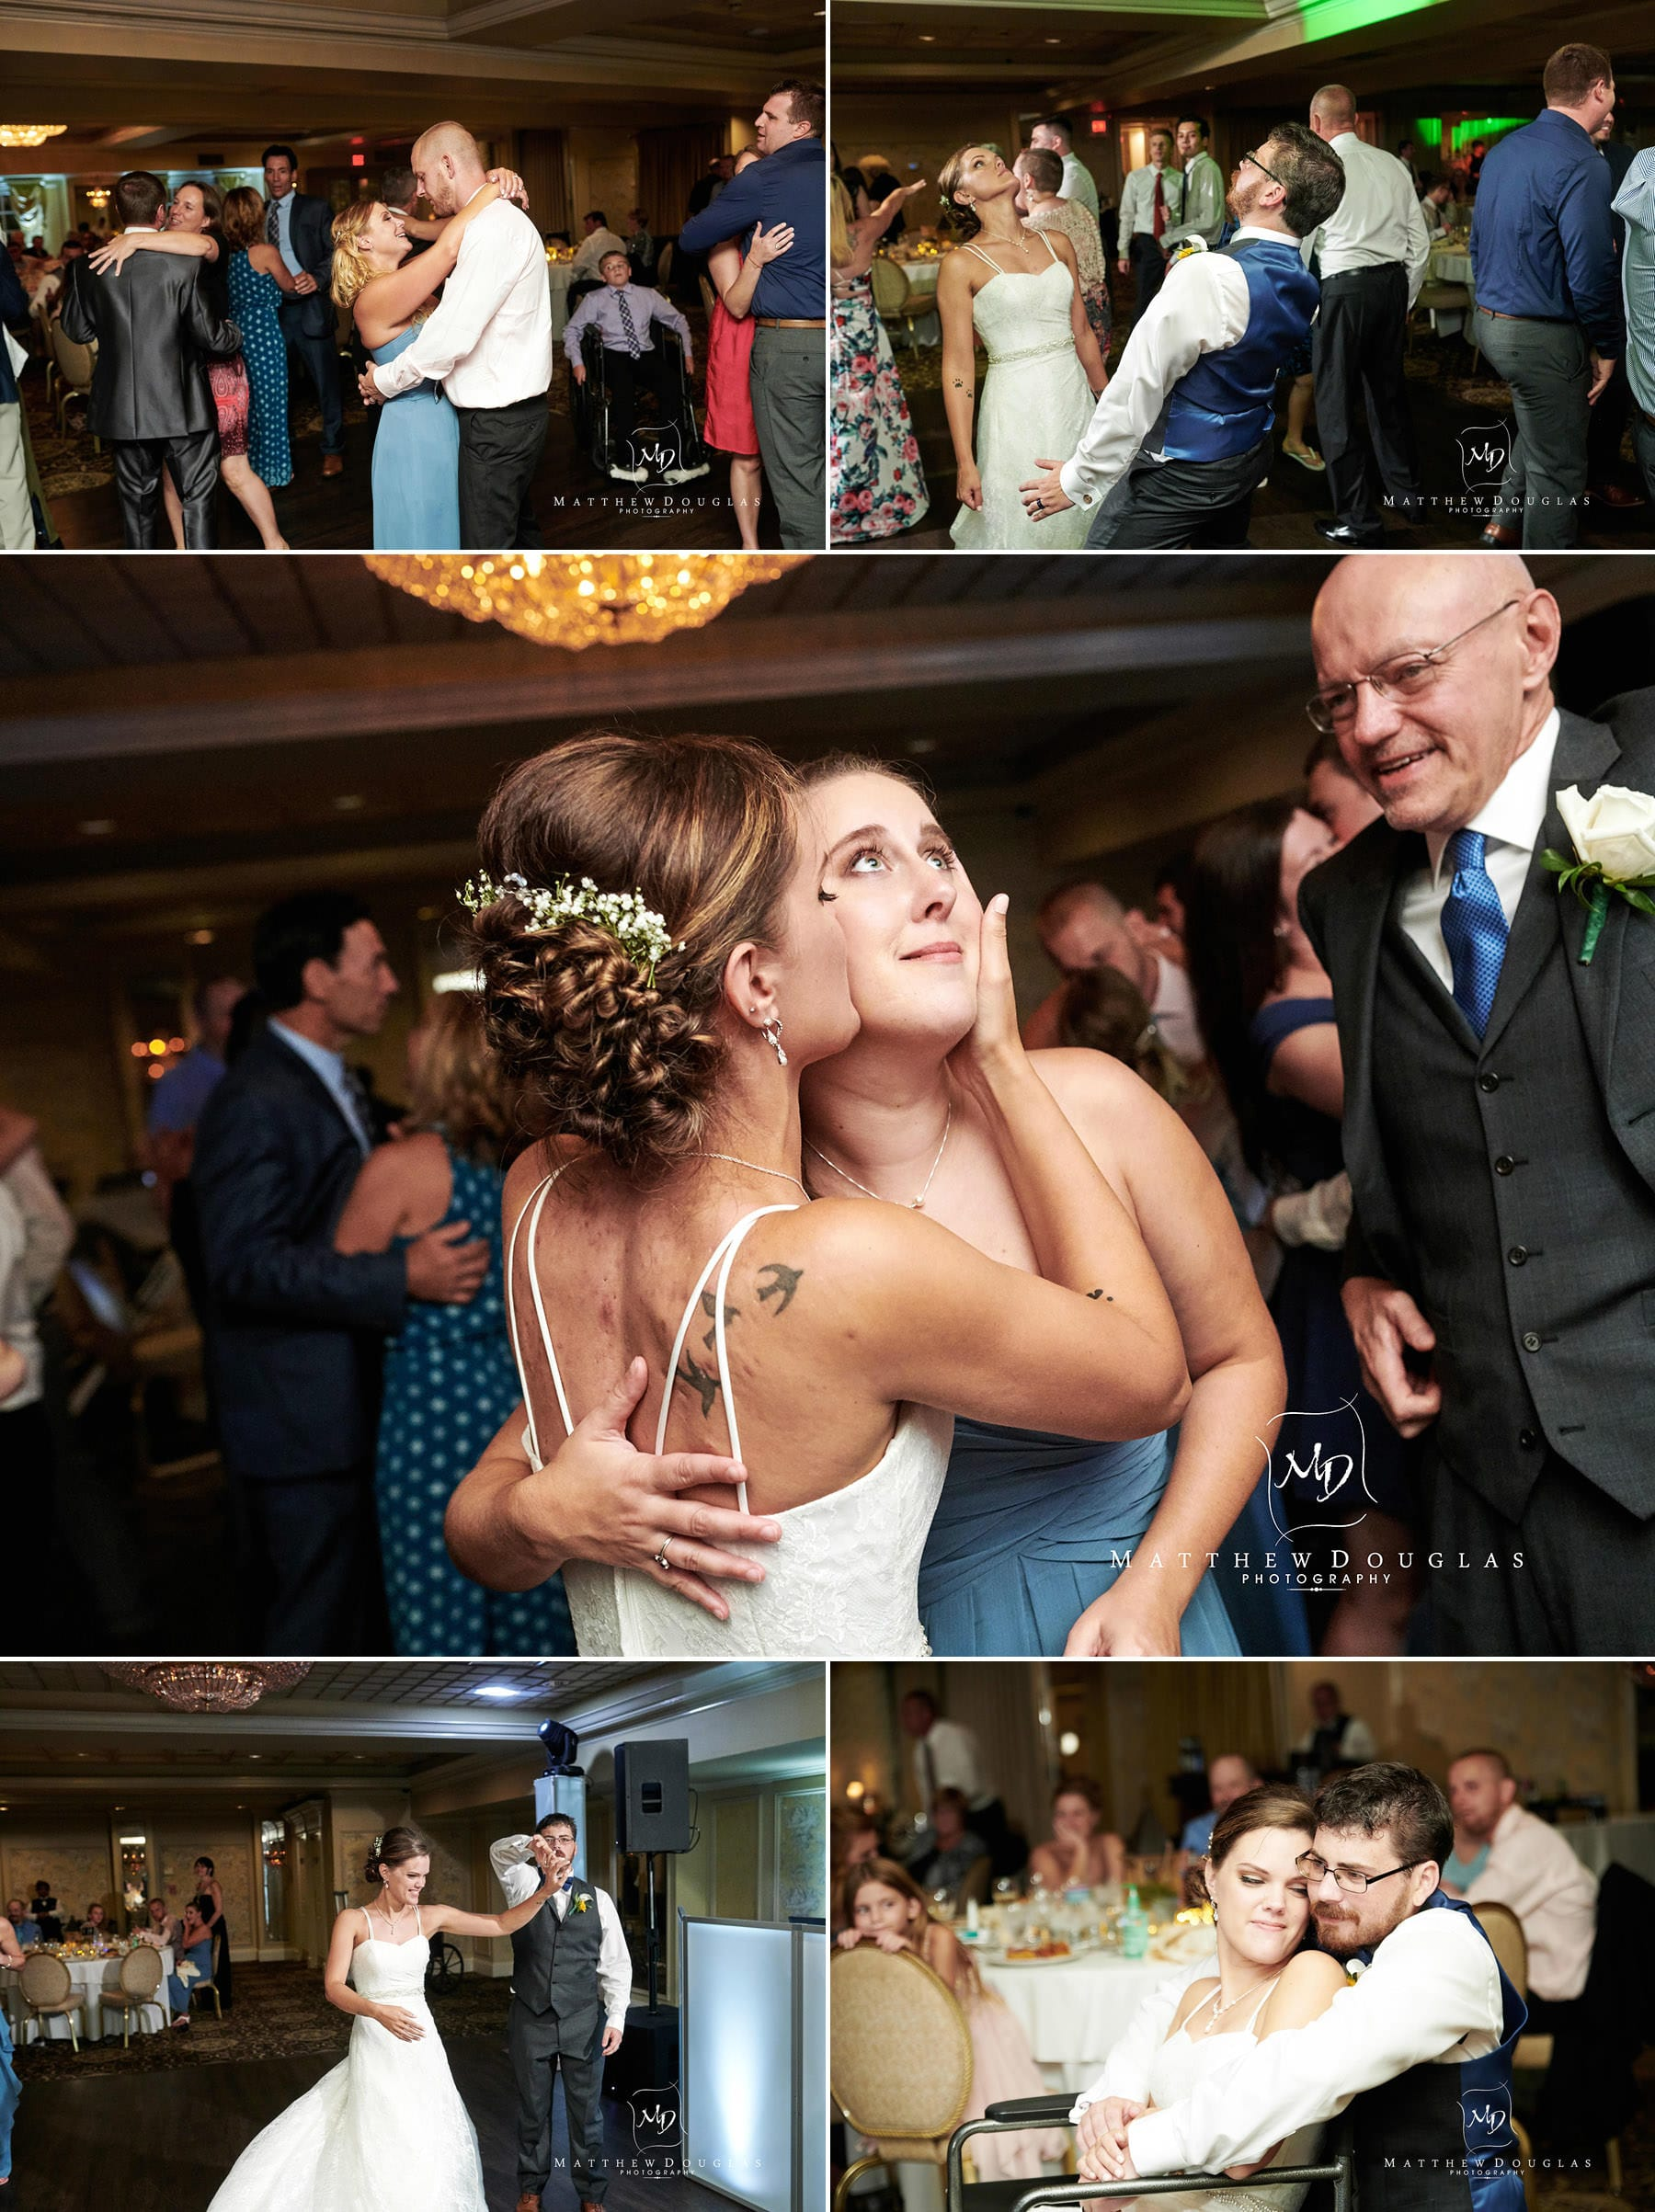 olde mill inn wedding dance floor photos